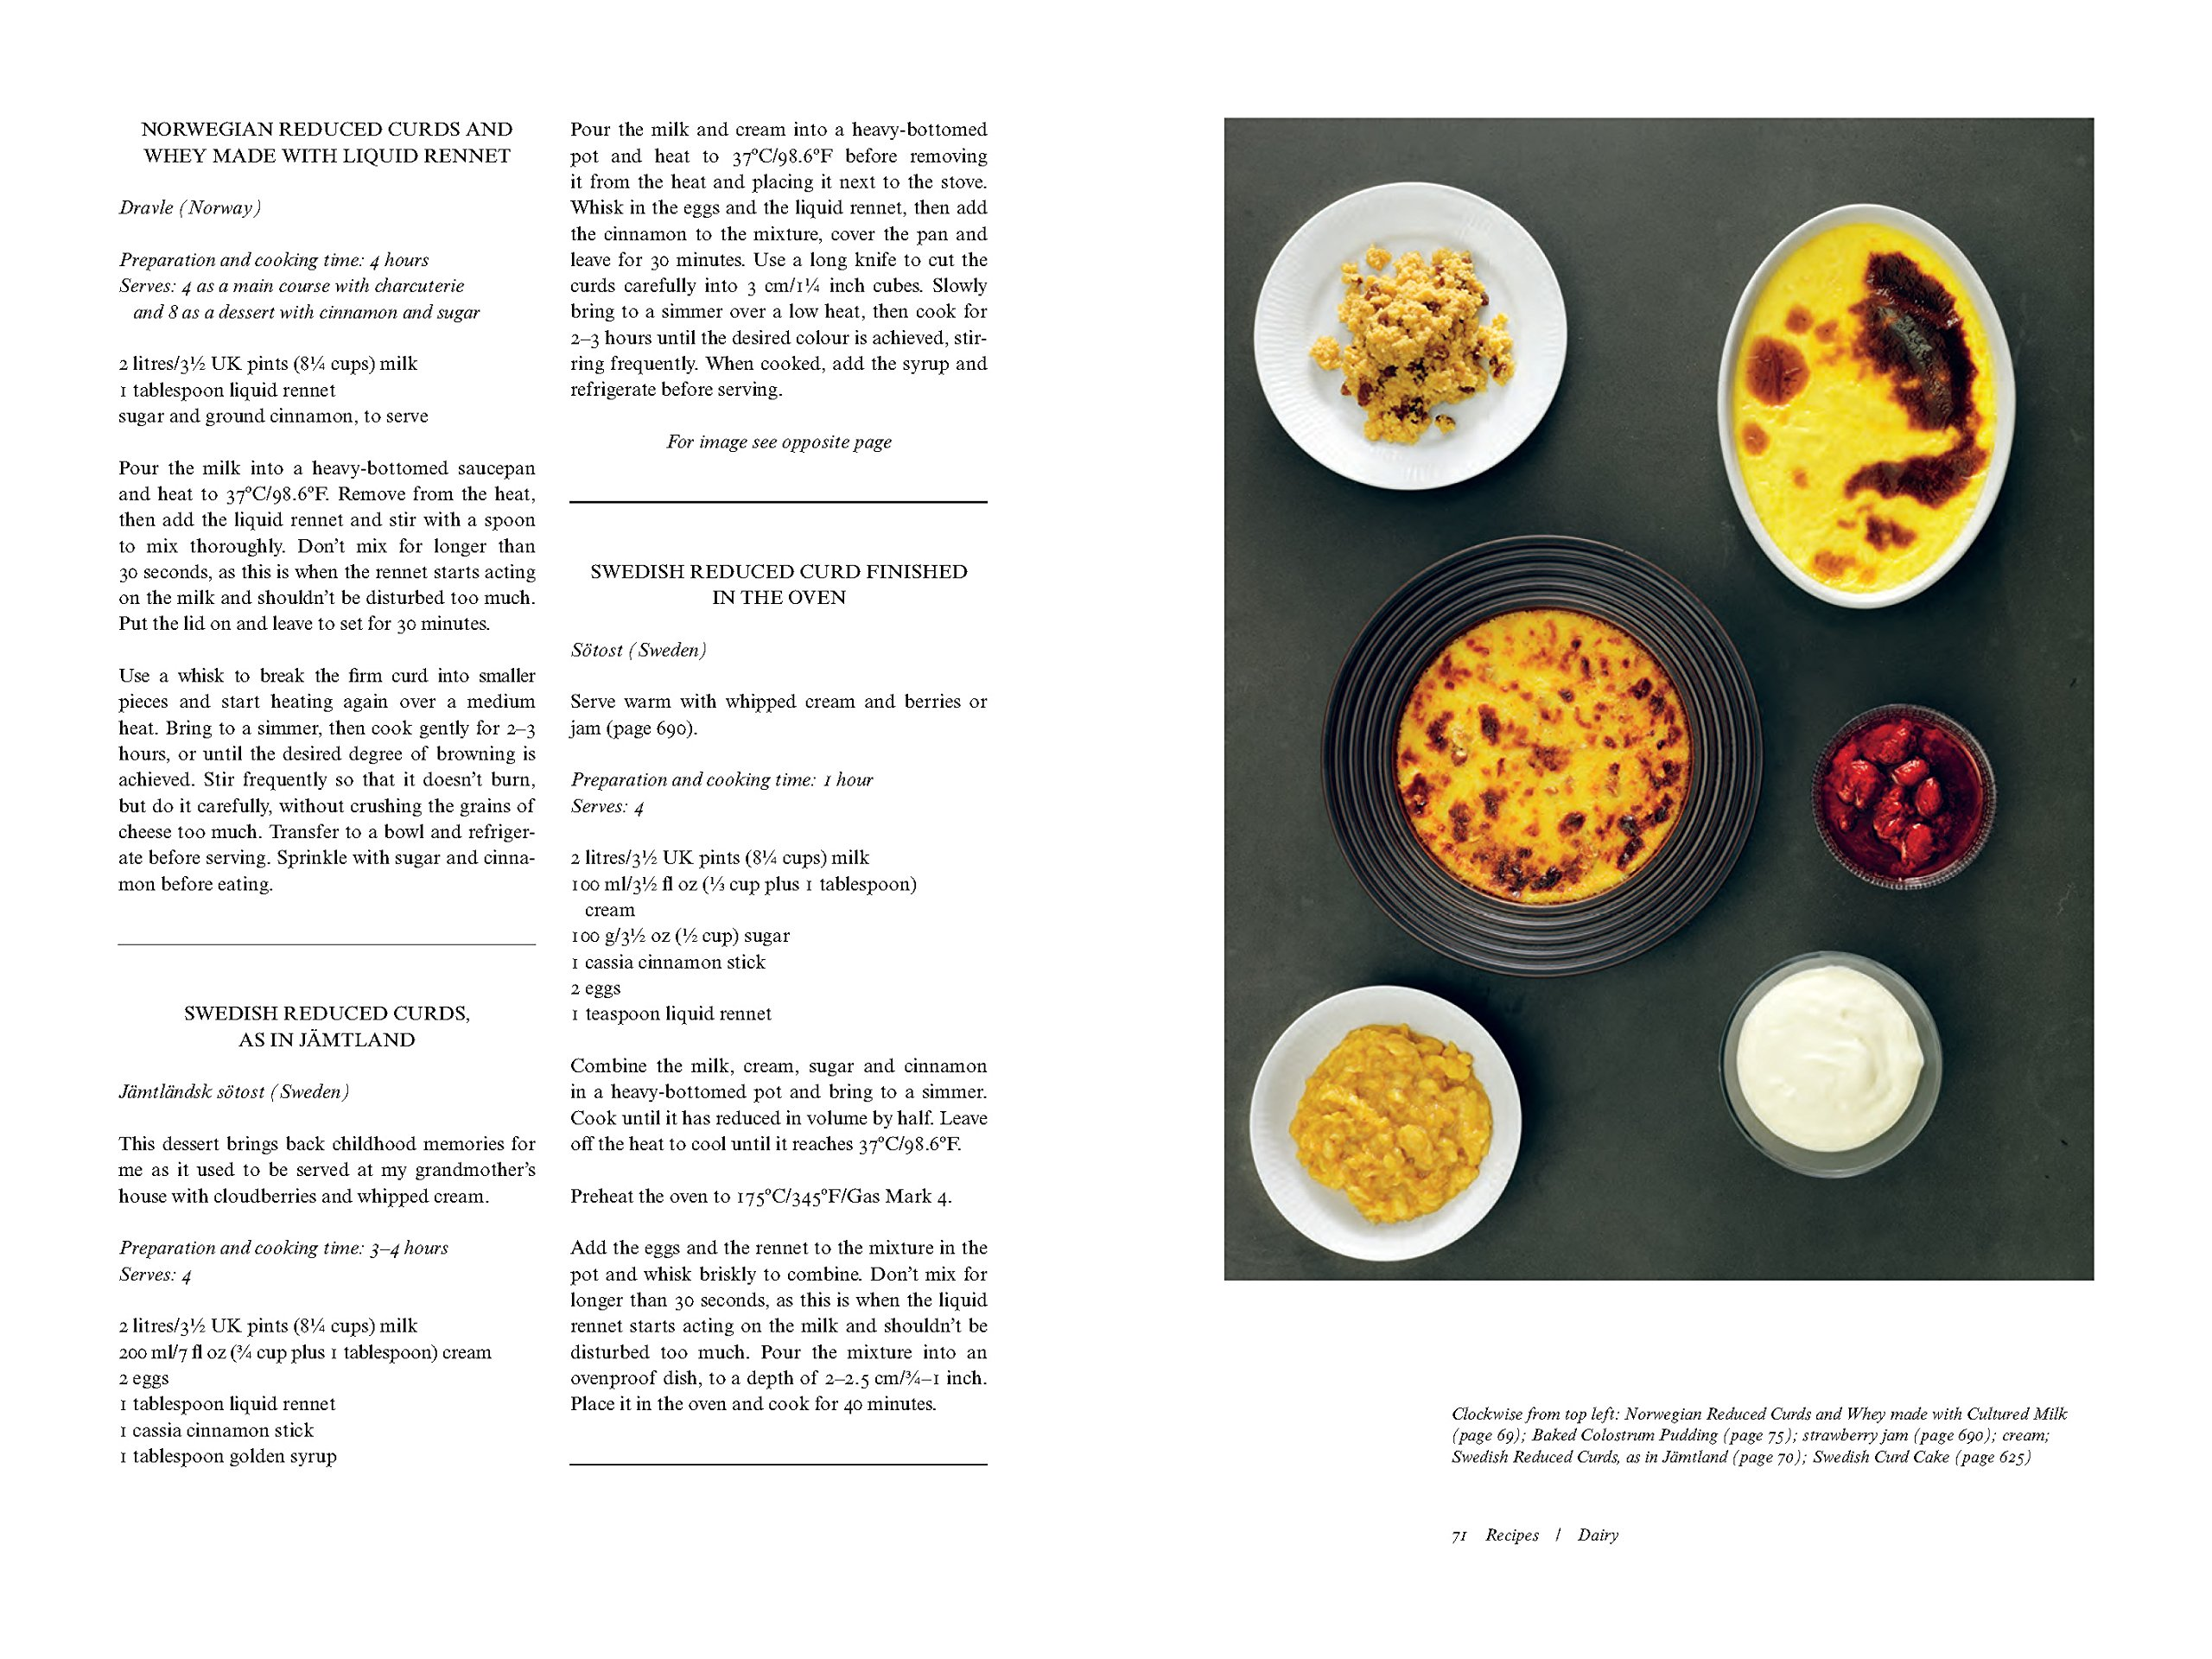 The nordic cookbook magnus nilsson 9780714868721 amazon books forumfinder Image collections